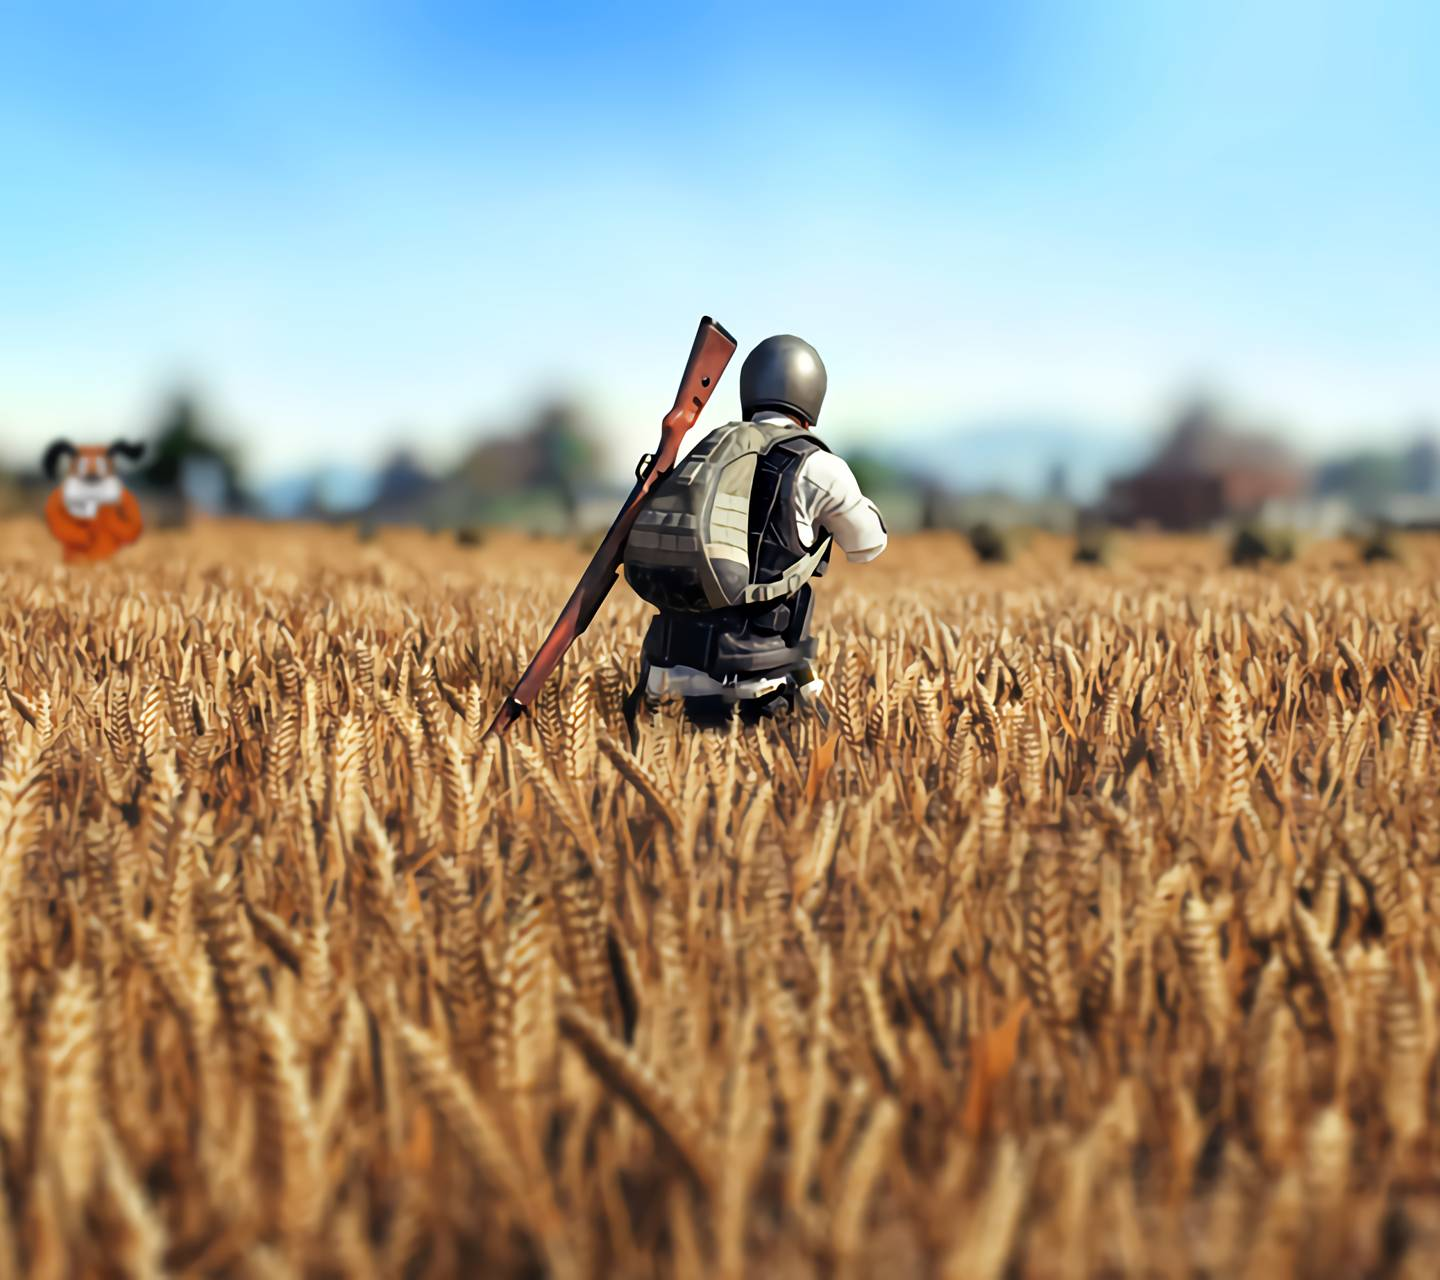 PUBG Wheatfield Wallpaper By Szalkai_s